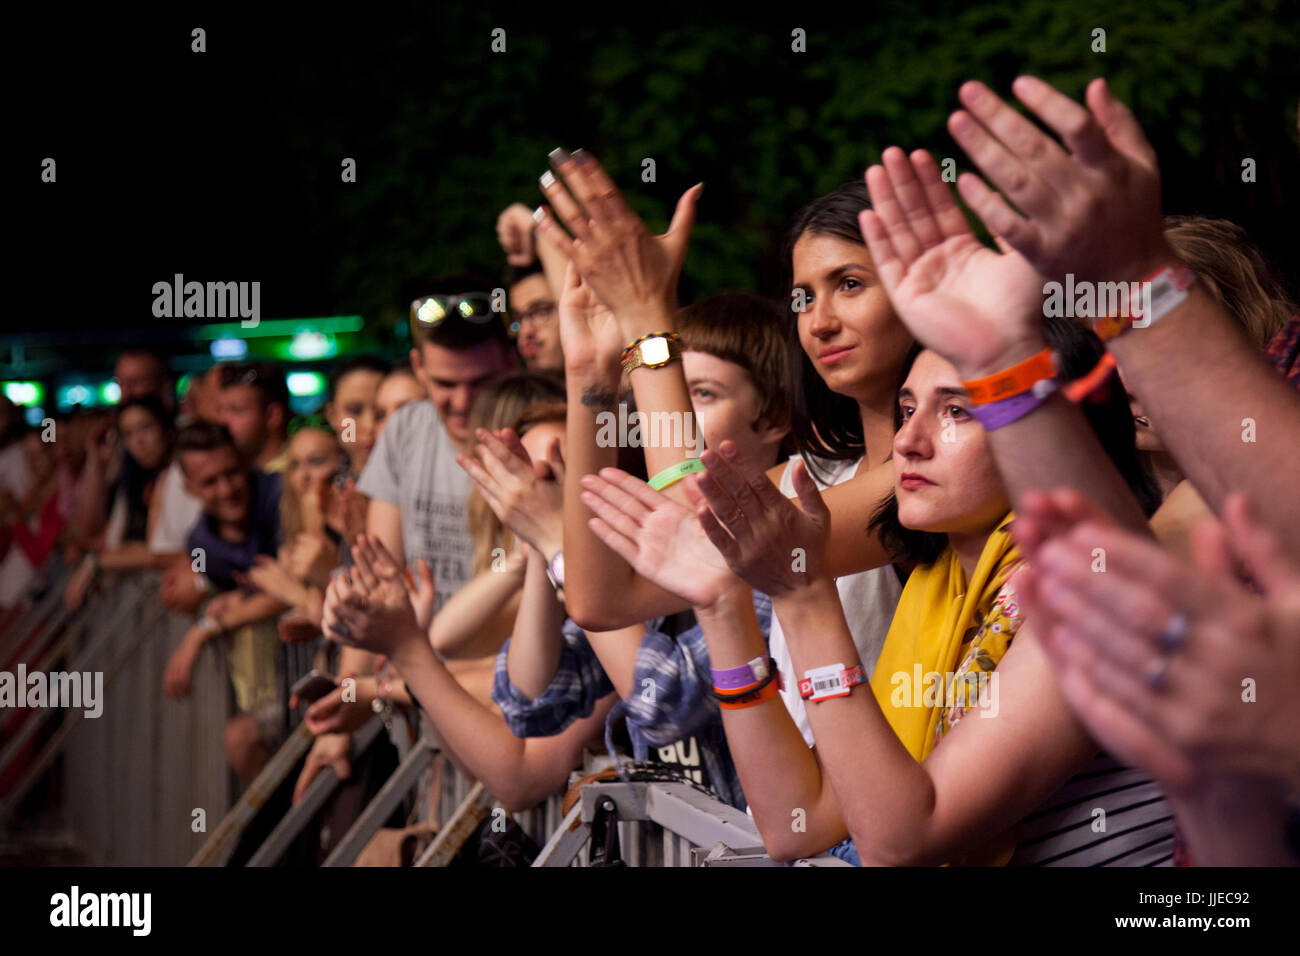 NOVI SAD, SERBIA - JULY 6, 2017: People applauding during the 2017 edition of the Exit Festival in Novi Sad, Serbia. - Stock Image